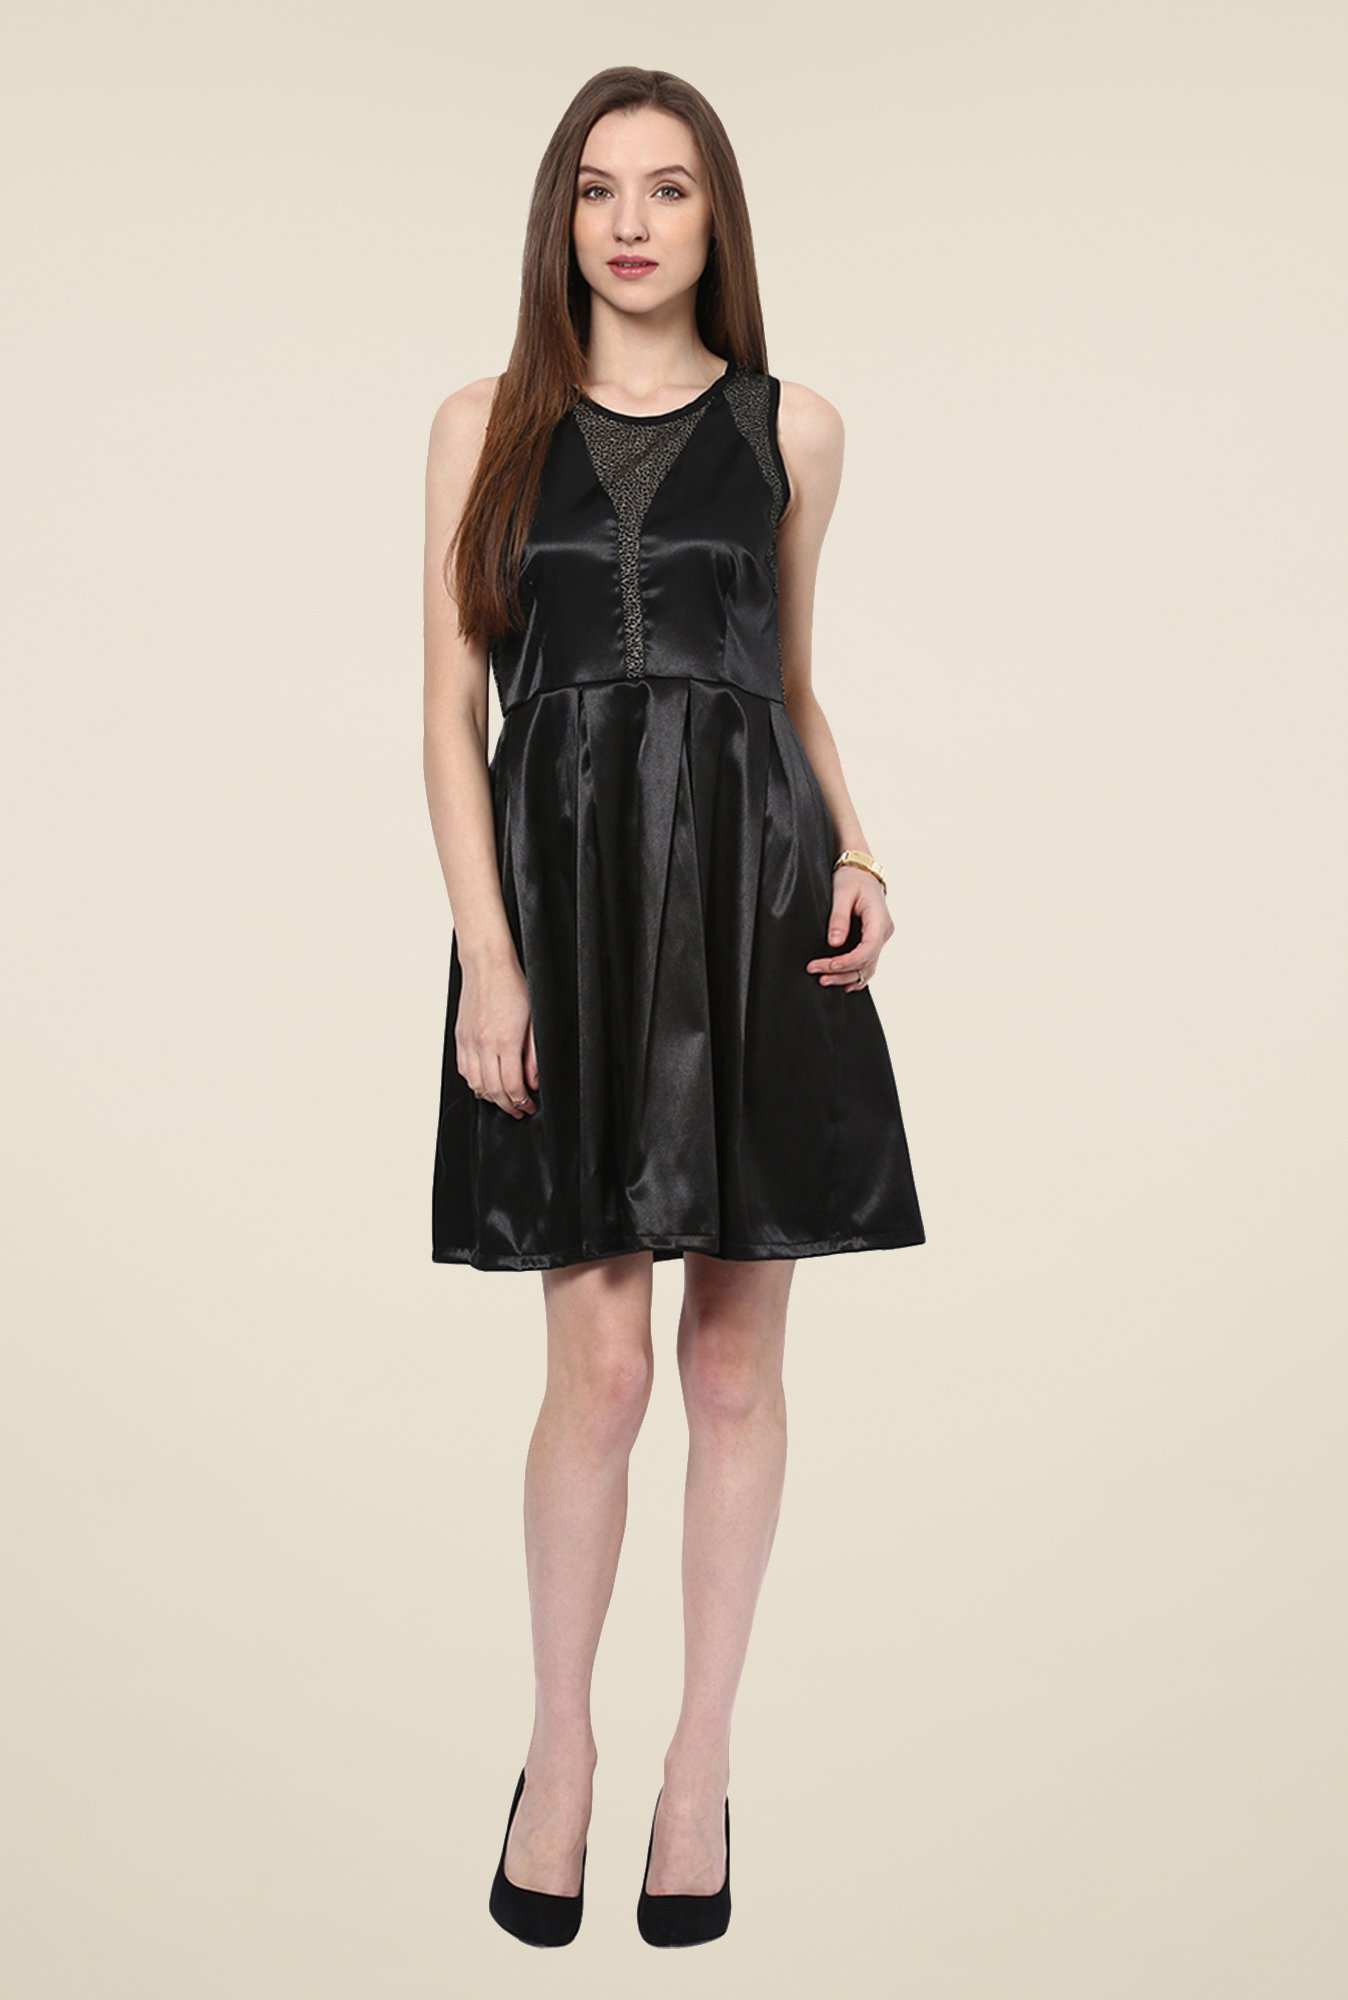 Yepme Black Janet Solid Party Dress